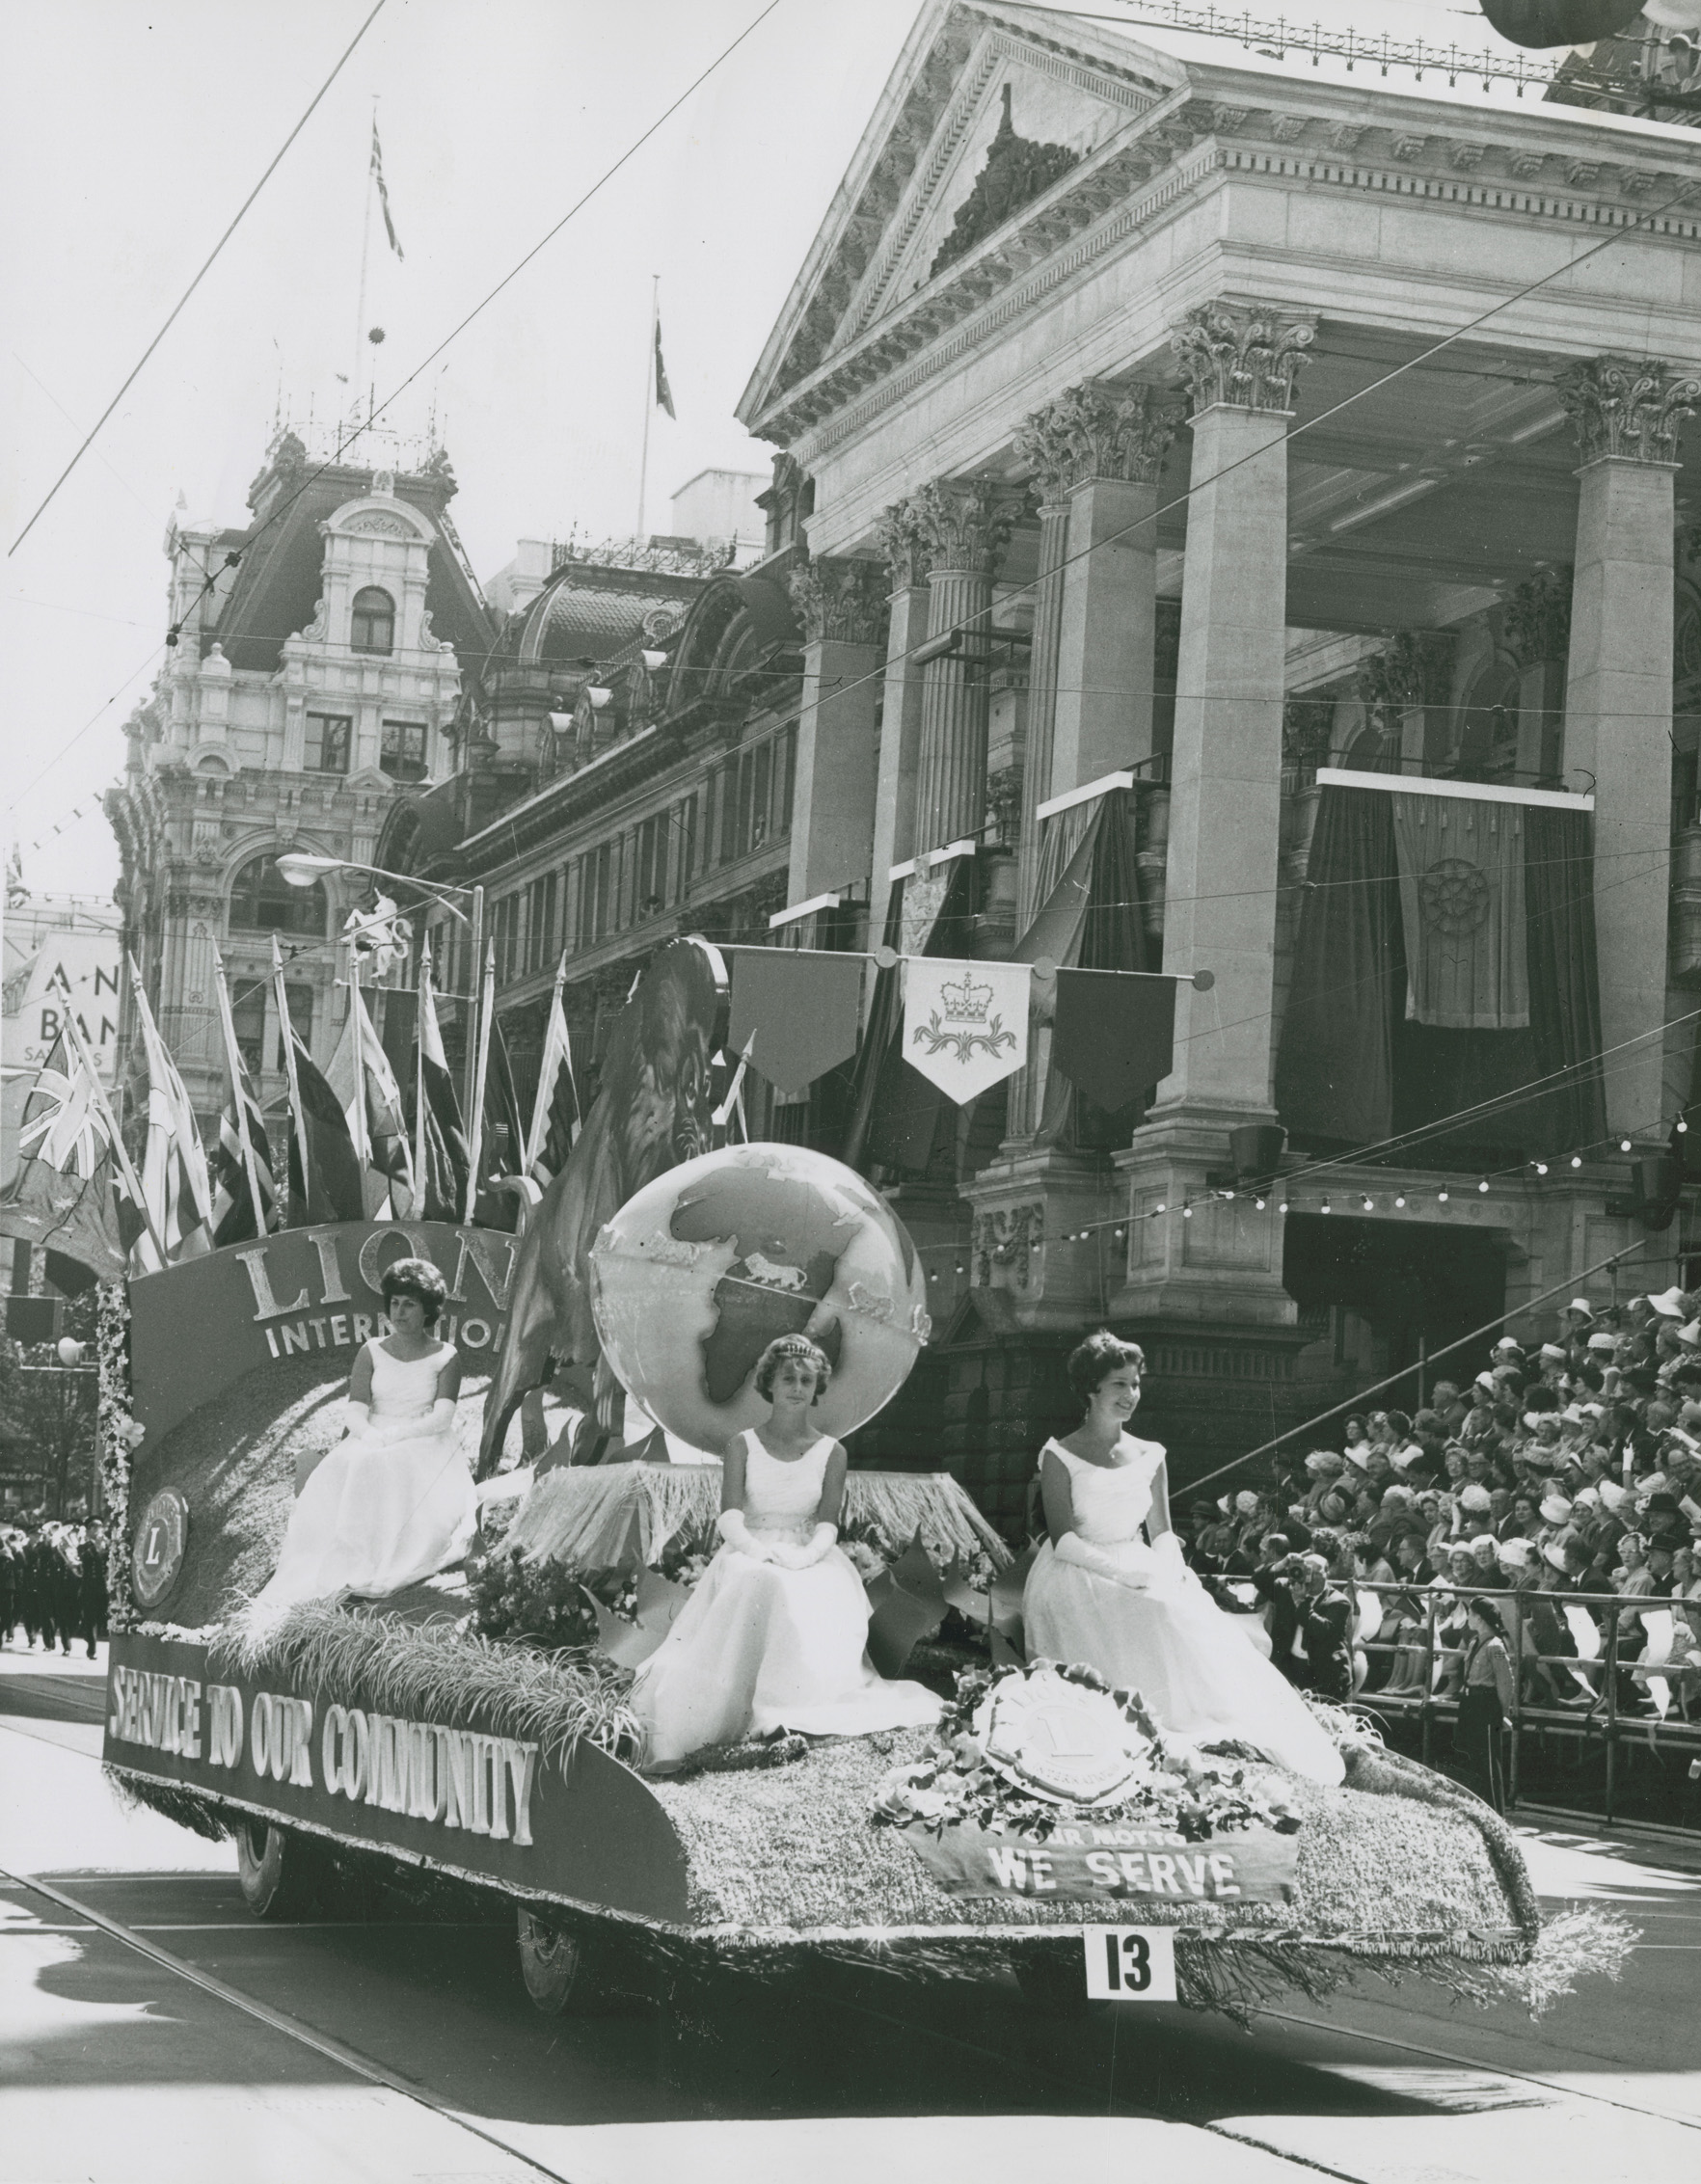 photo of the lions float which features a world globe